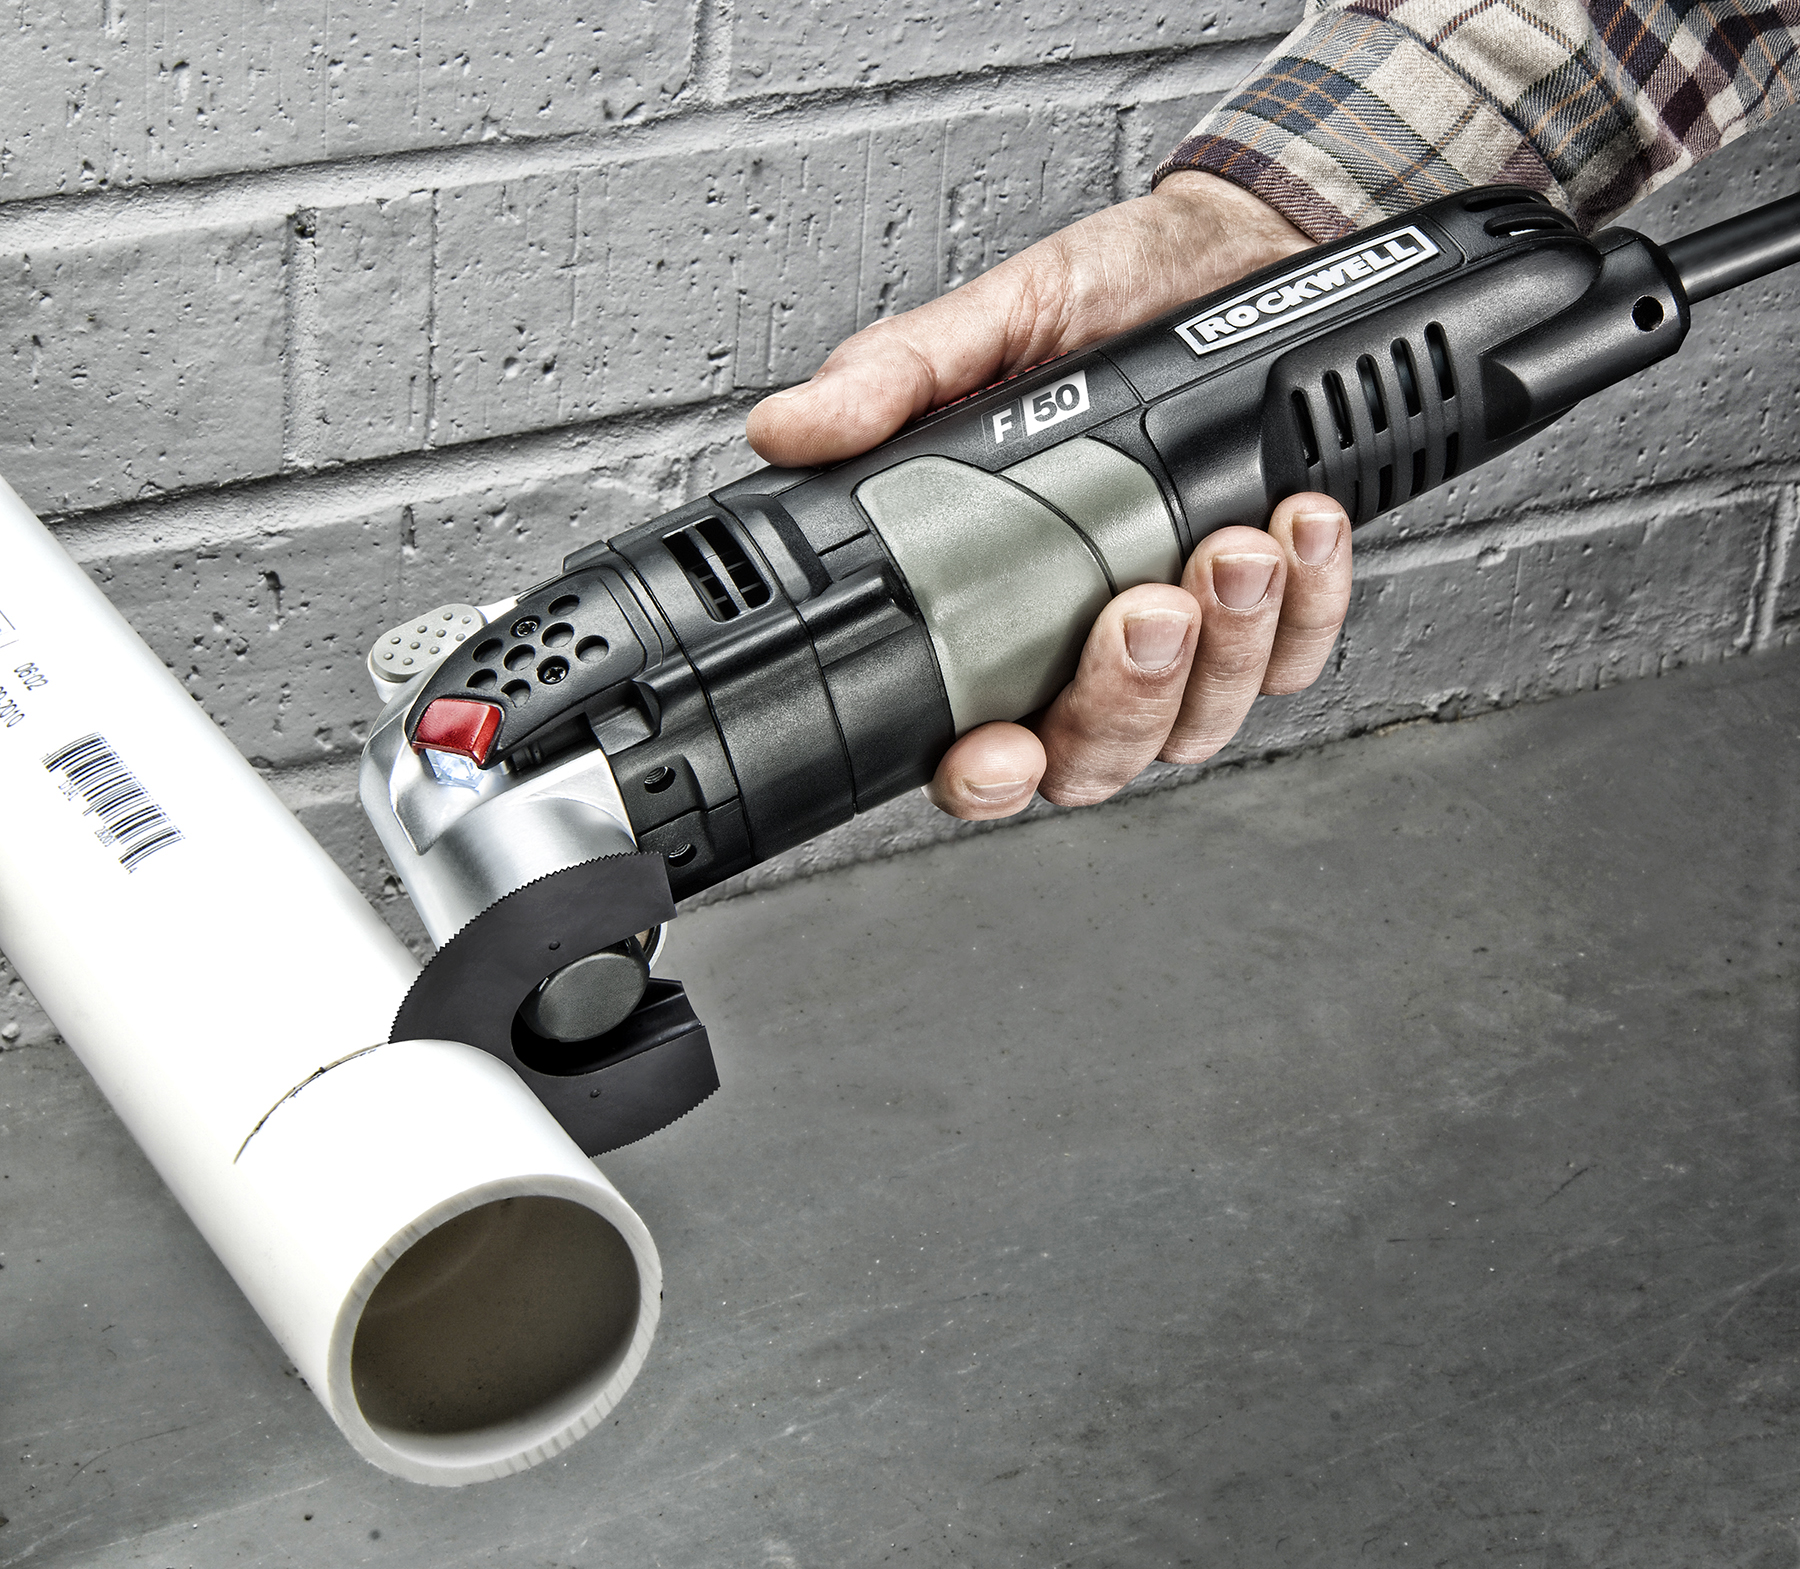 New Rockwell Sonicrafter Oscillating Tools Cut Faster